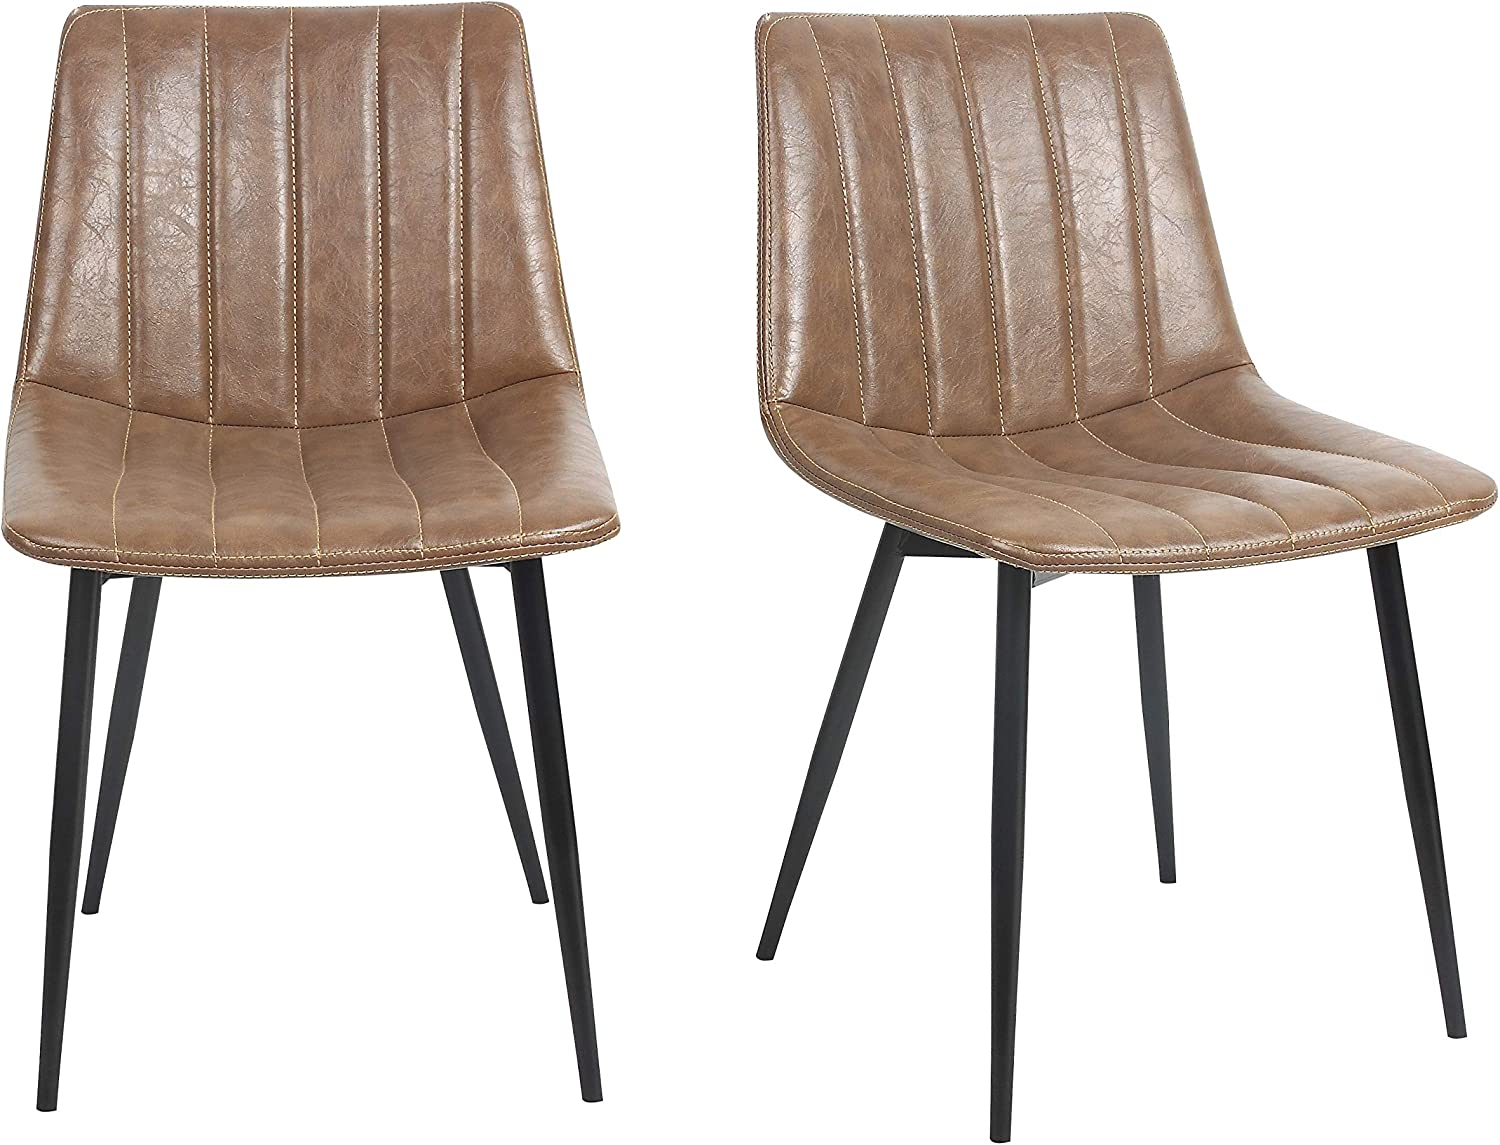 ViscoLogic LUXUS Eames Style Leatherette Upholstered Side Dining Chairs with Metal Legs (2, Alex Brown)